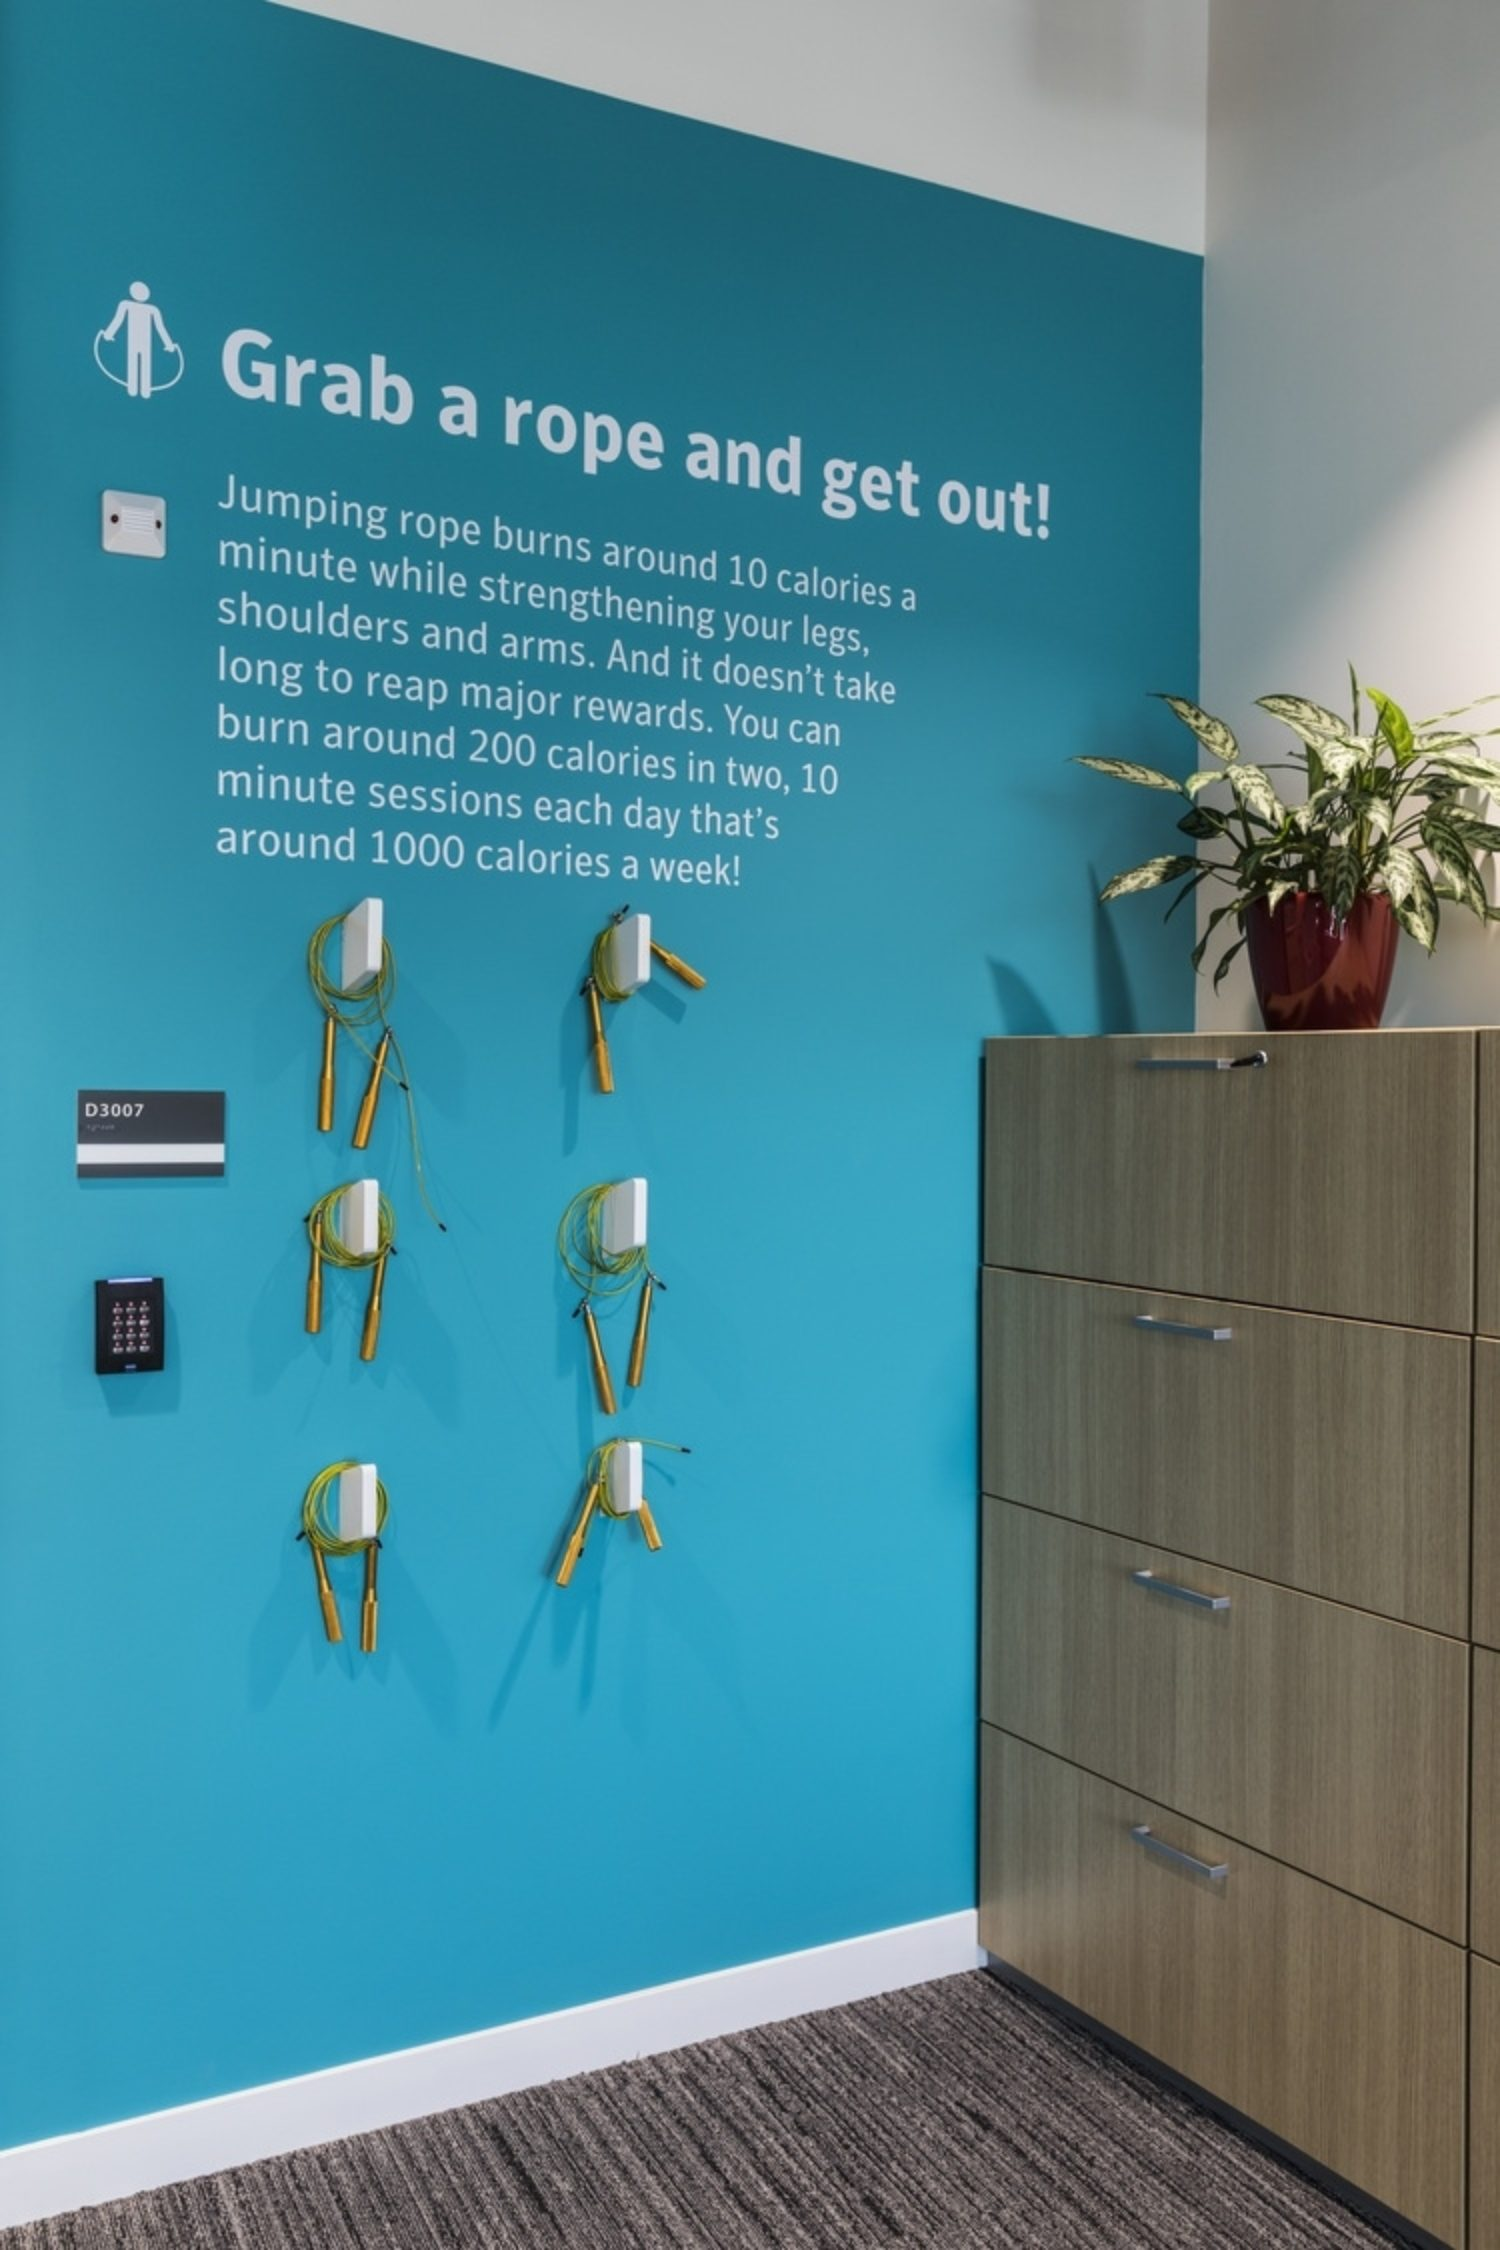 Symantec's office design for wellbeing with jump ropes